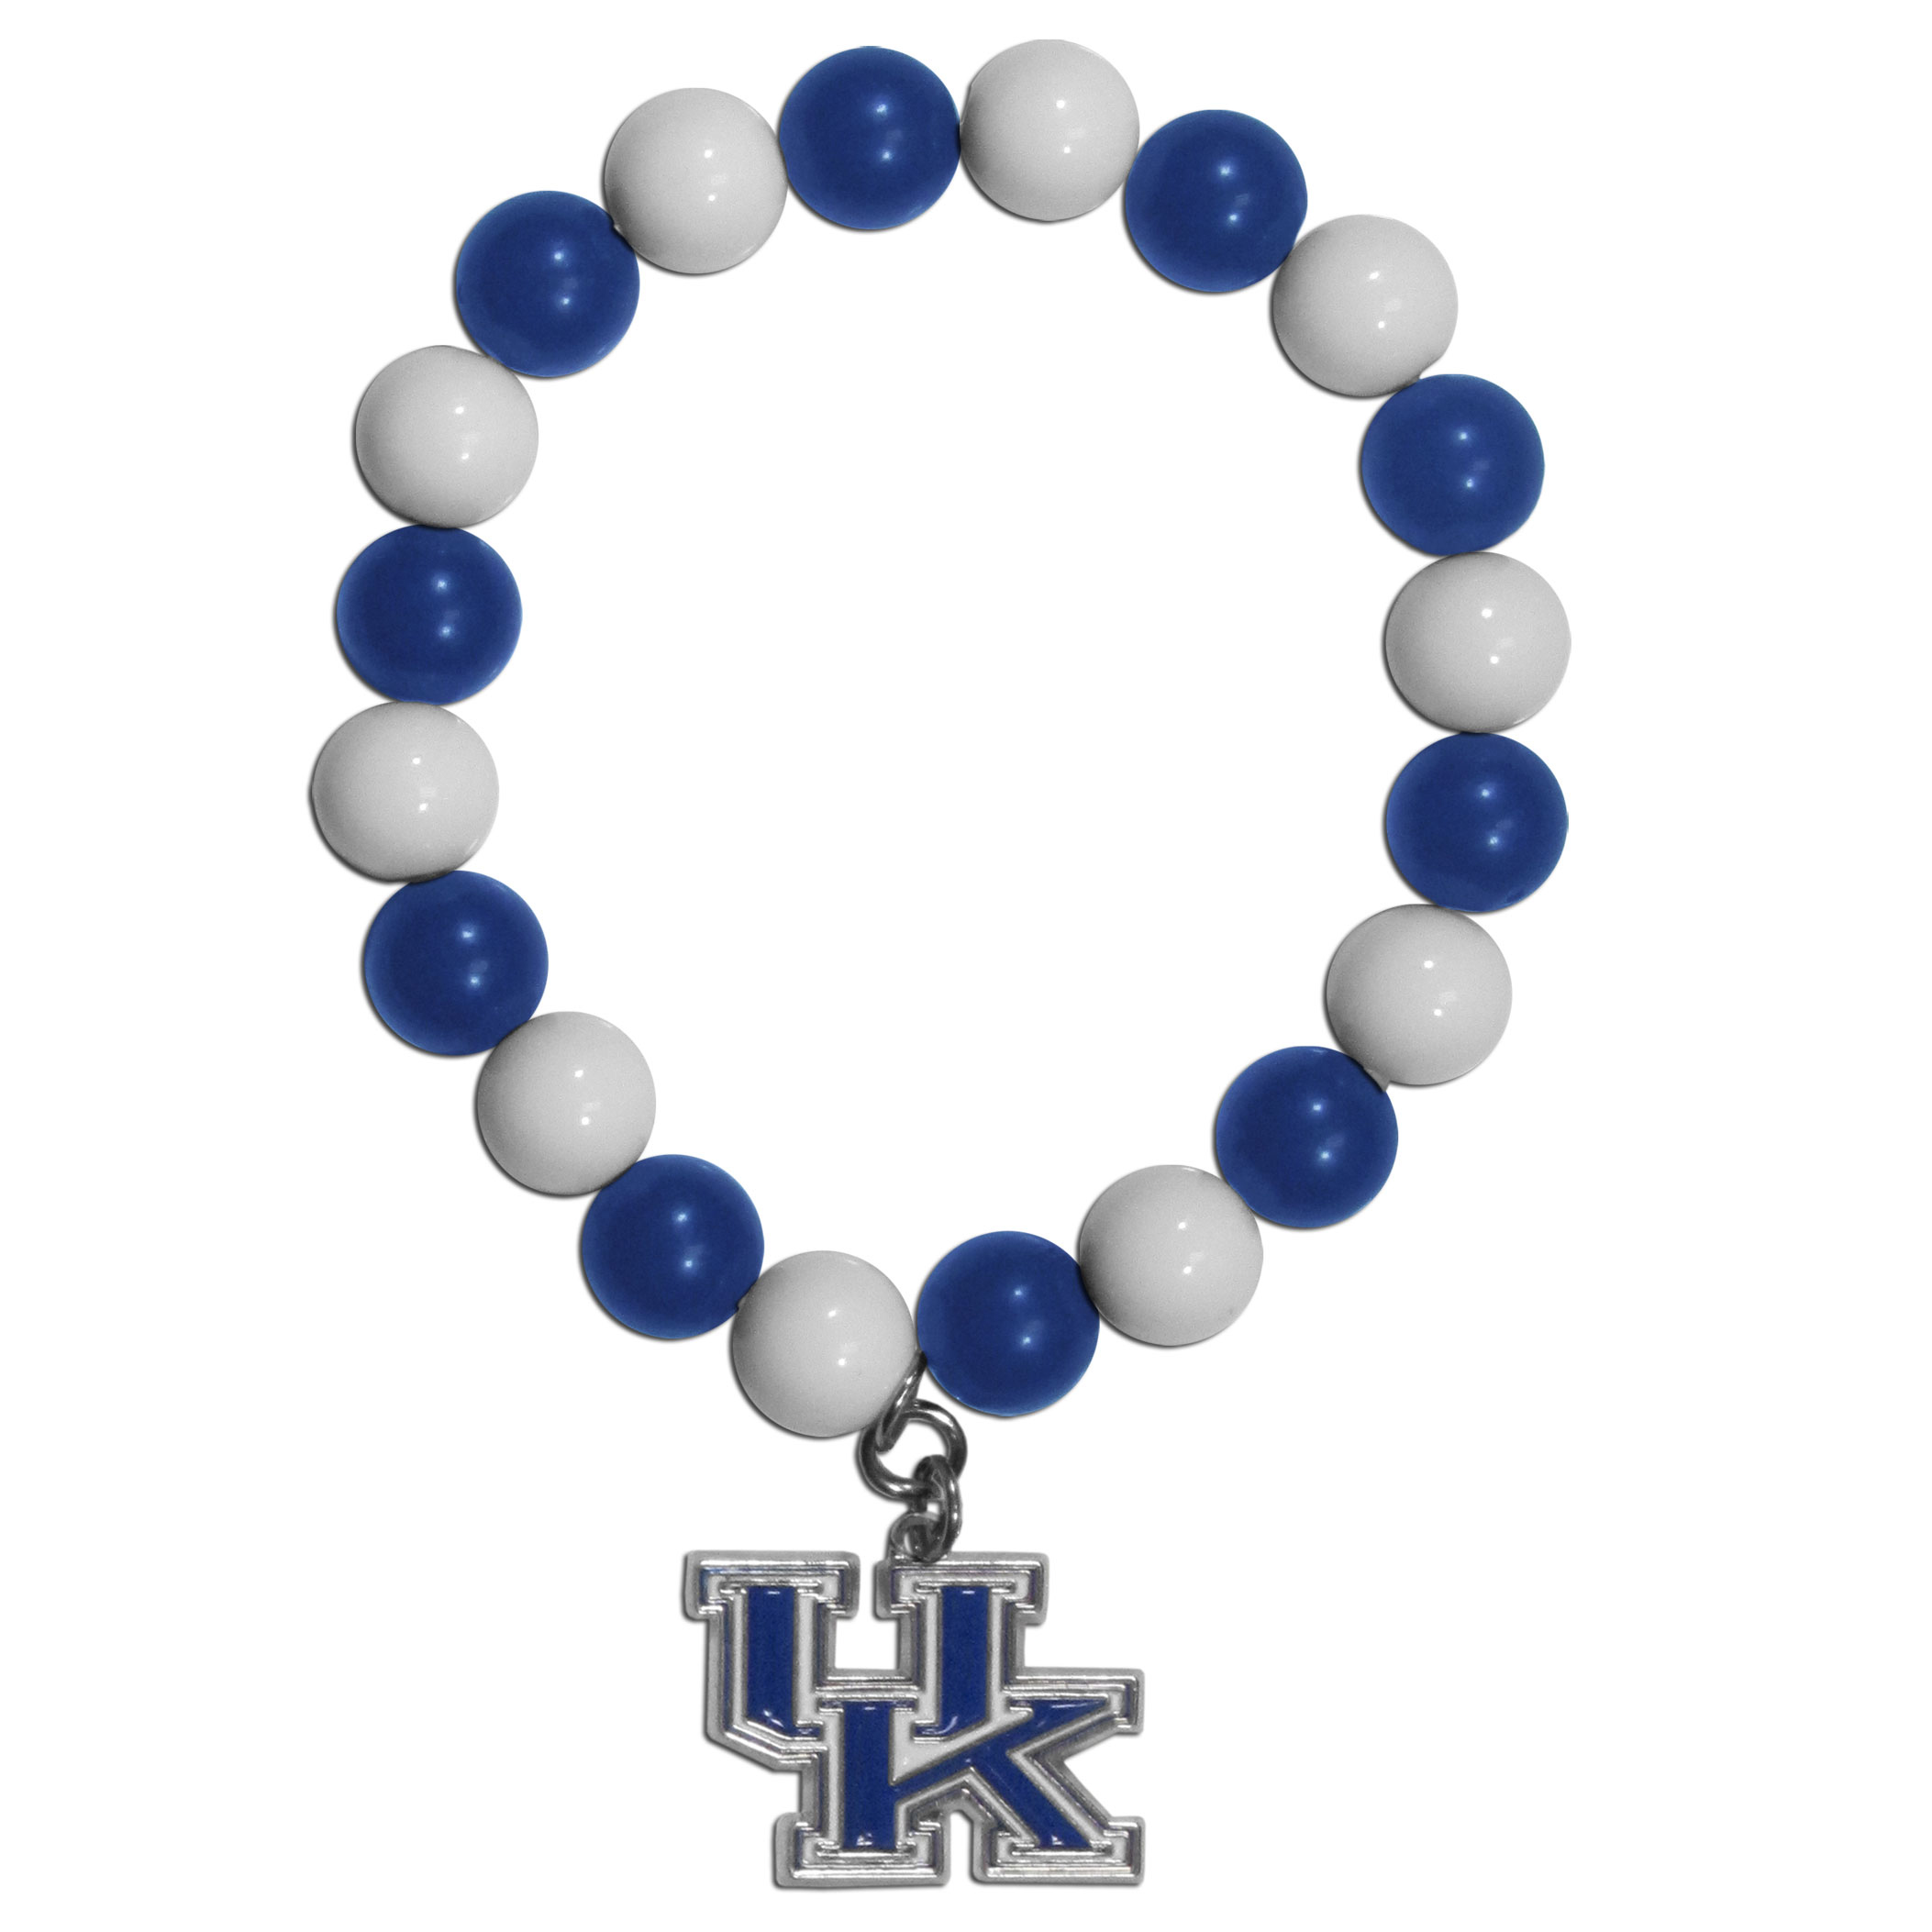 Kentucky Wildcats Fan Bead Bracelet - Flash your Kentucky Wildcats spirit with this bright stretch bracelet. This new bracelet features multicolored team beads on stretch cord with a nickel-free enameled chrome team charm. This bracelet adds the perfect pop of color to your game day accessories.